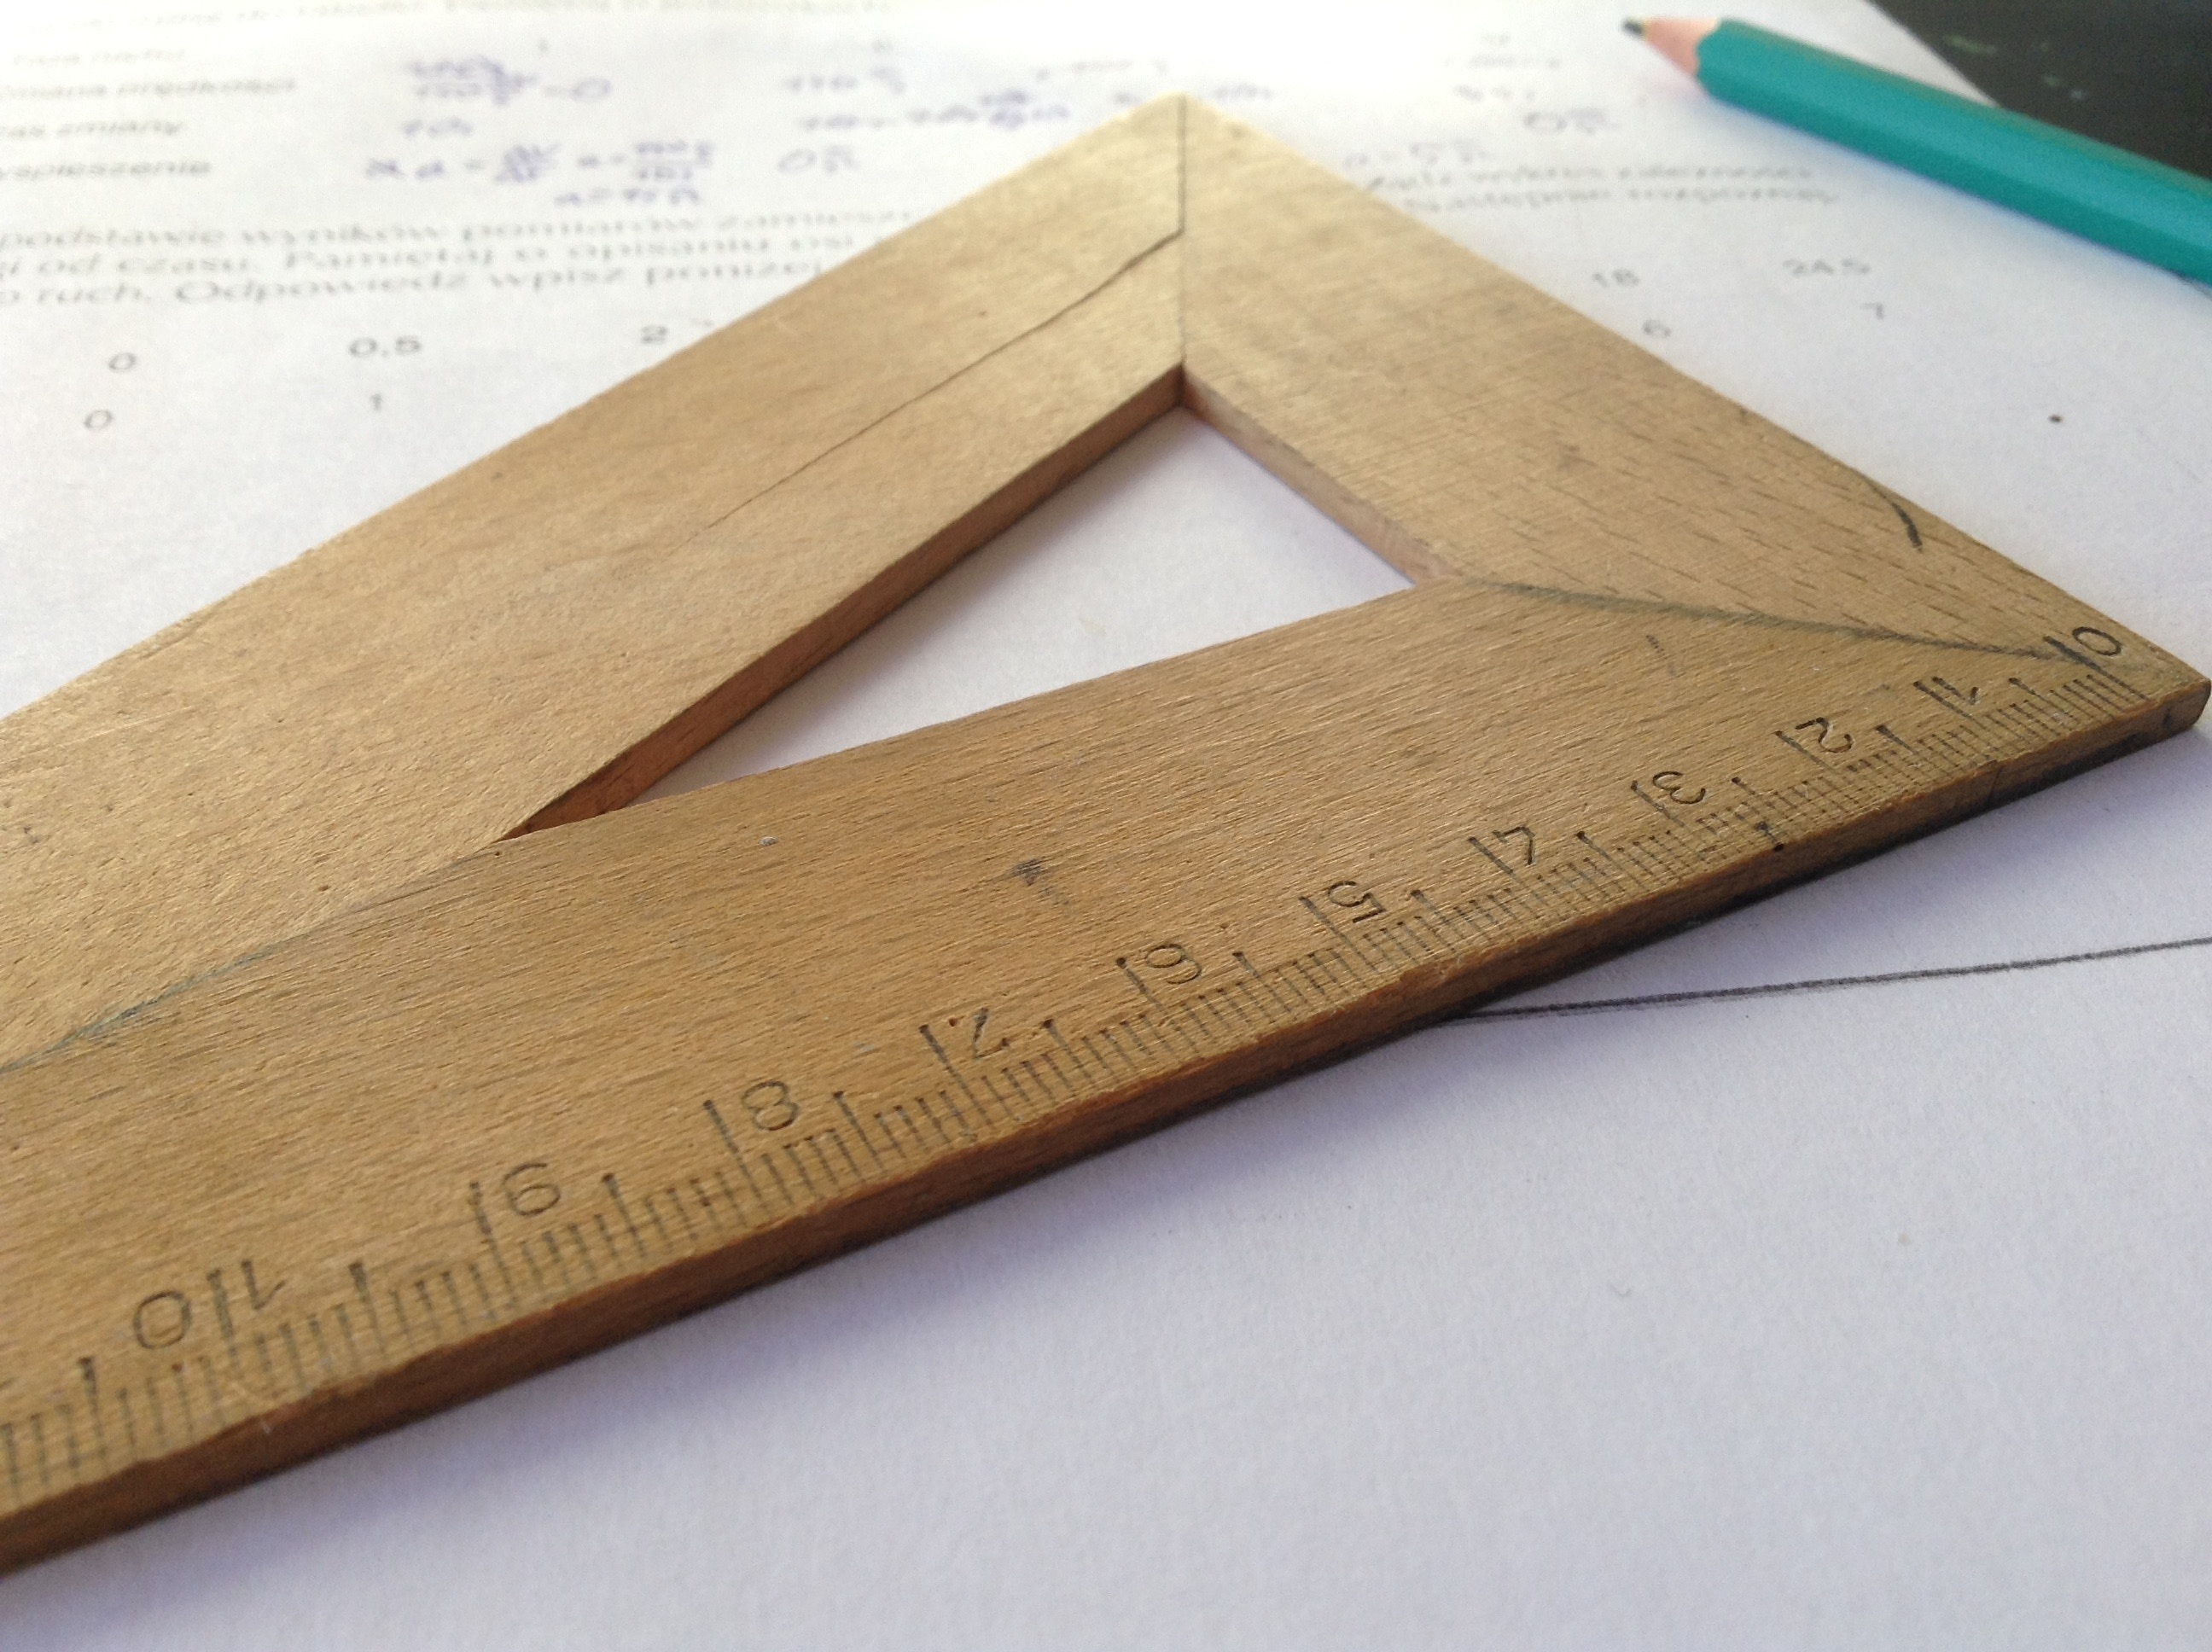 A wooden triangular ruler and turquoise pencil laying on top of a white piece of paper